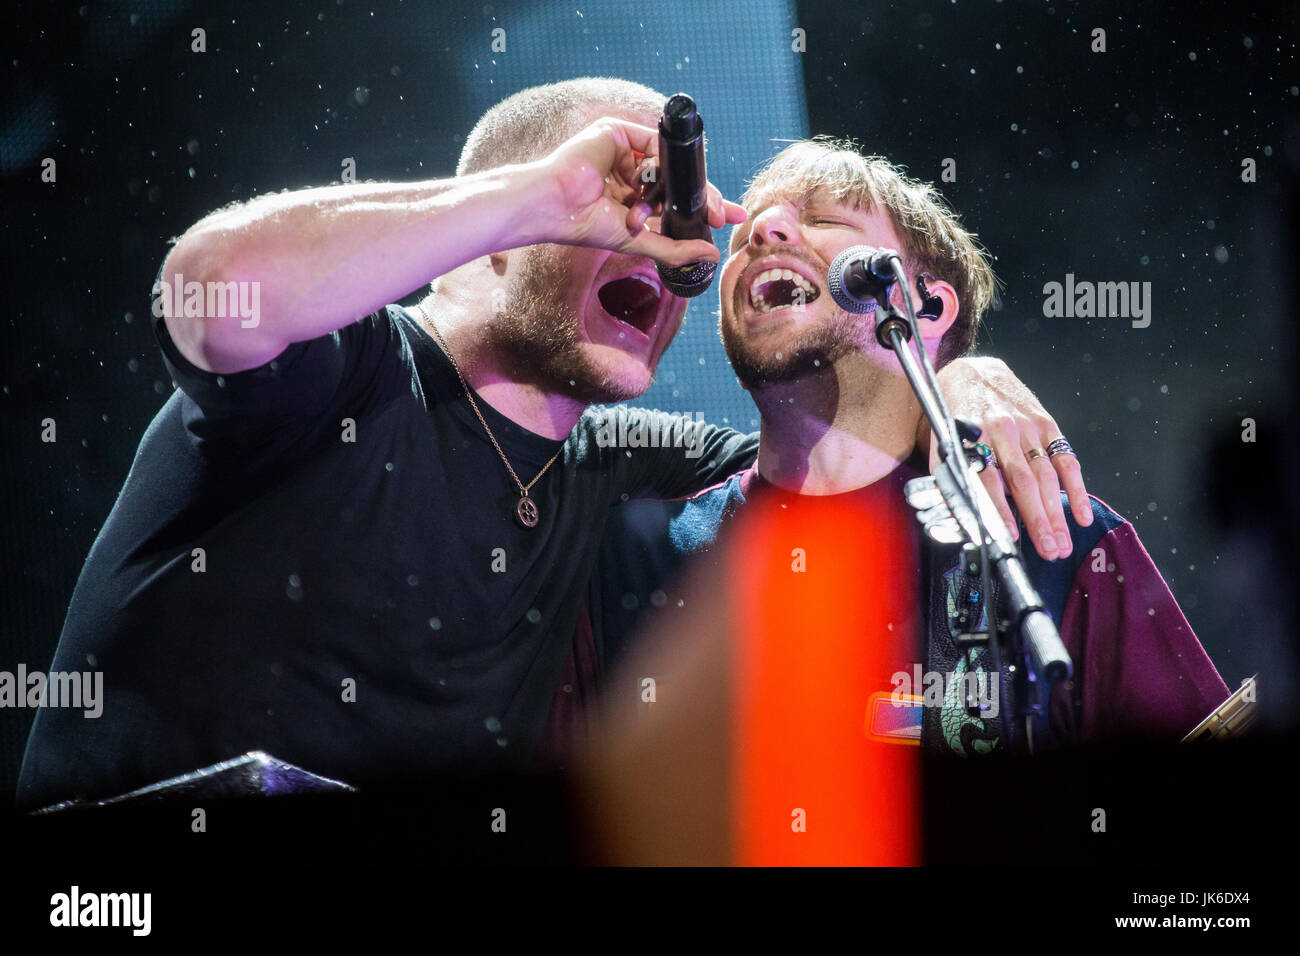 Locarno, Switzerland. 21st July, 2017. The American band IMAGINE DRAGONS performs live on stage in Piazza Grande - Stock Image